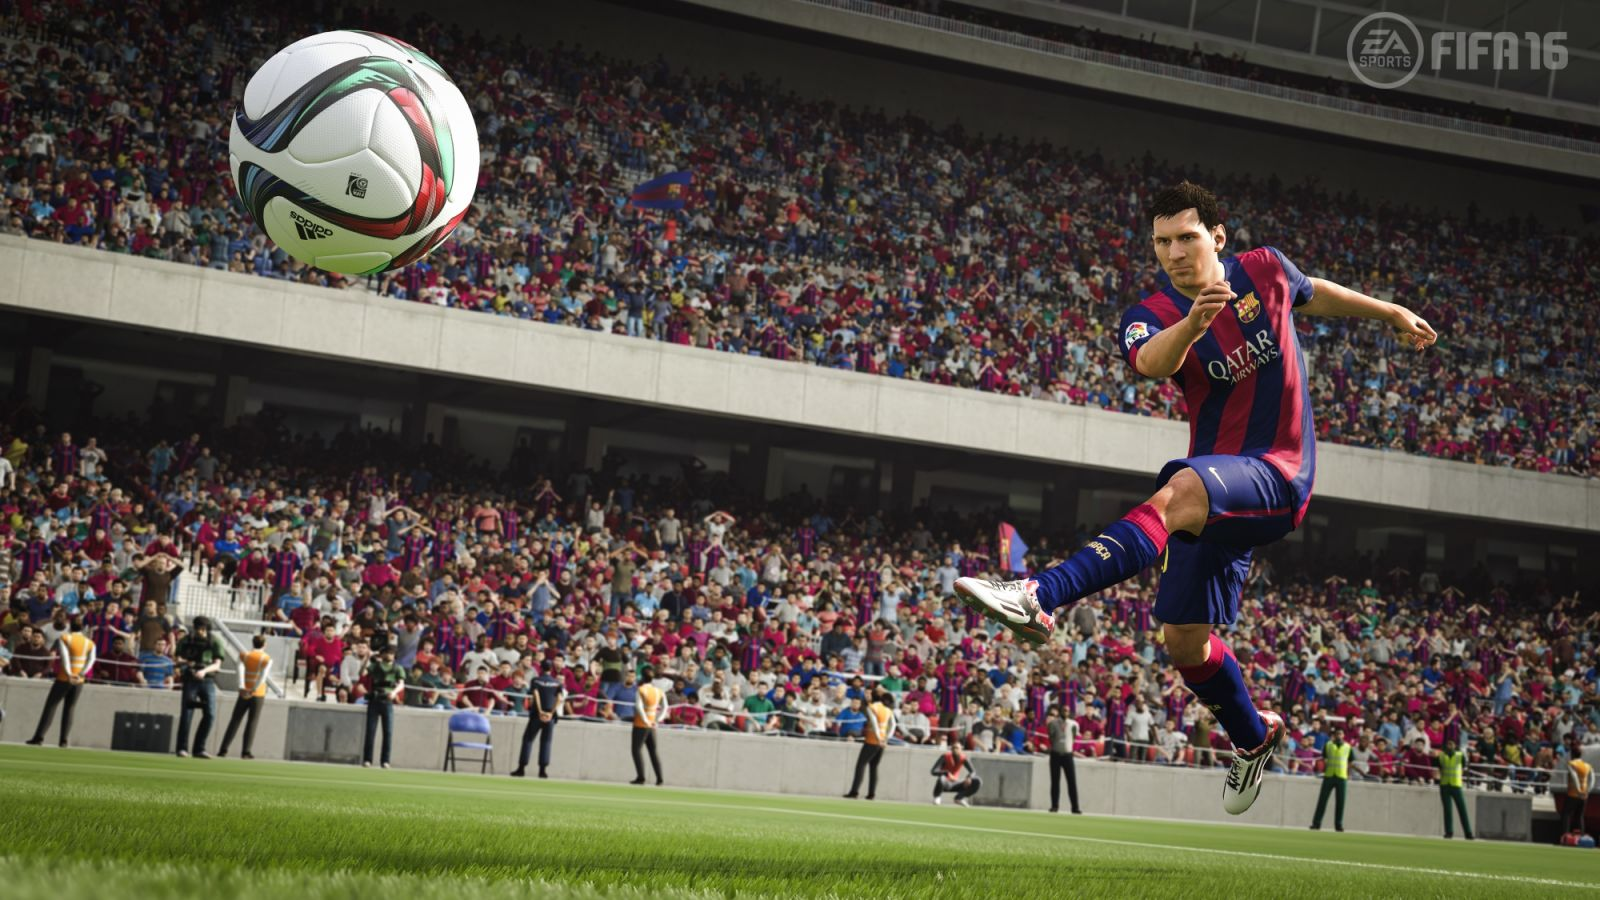 http://www.eafifacoins.net/upload/images/fifa16_messi-1(1).jpg